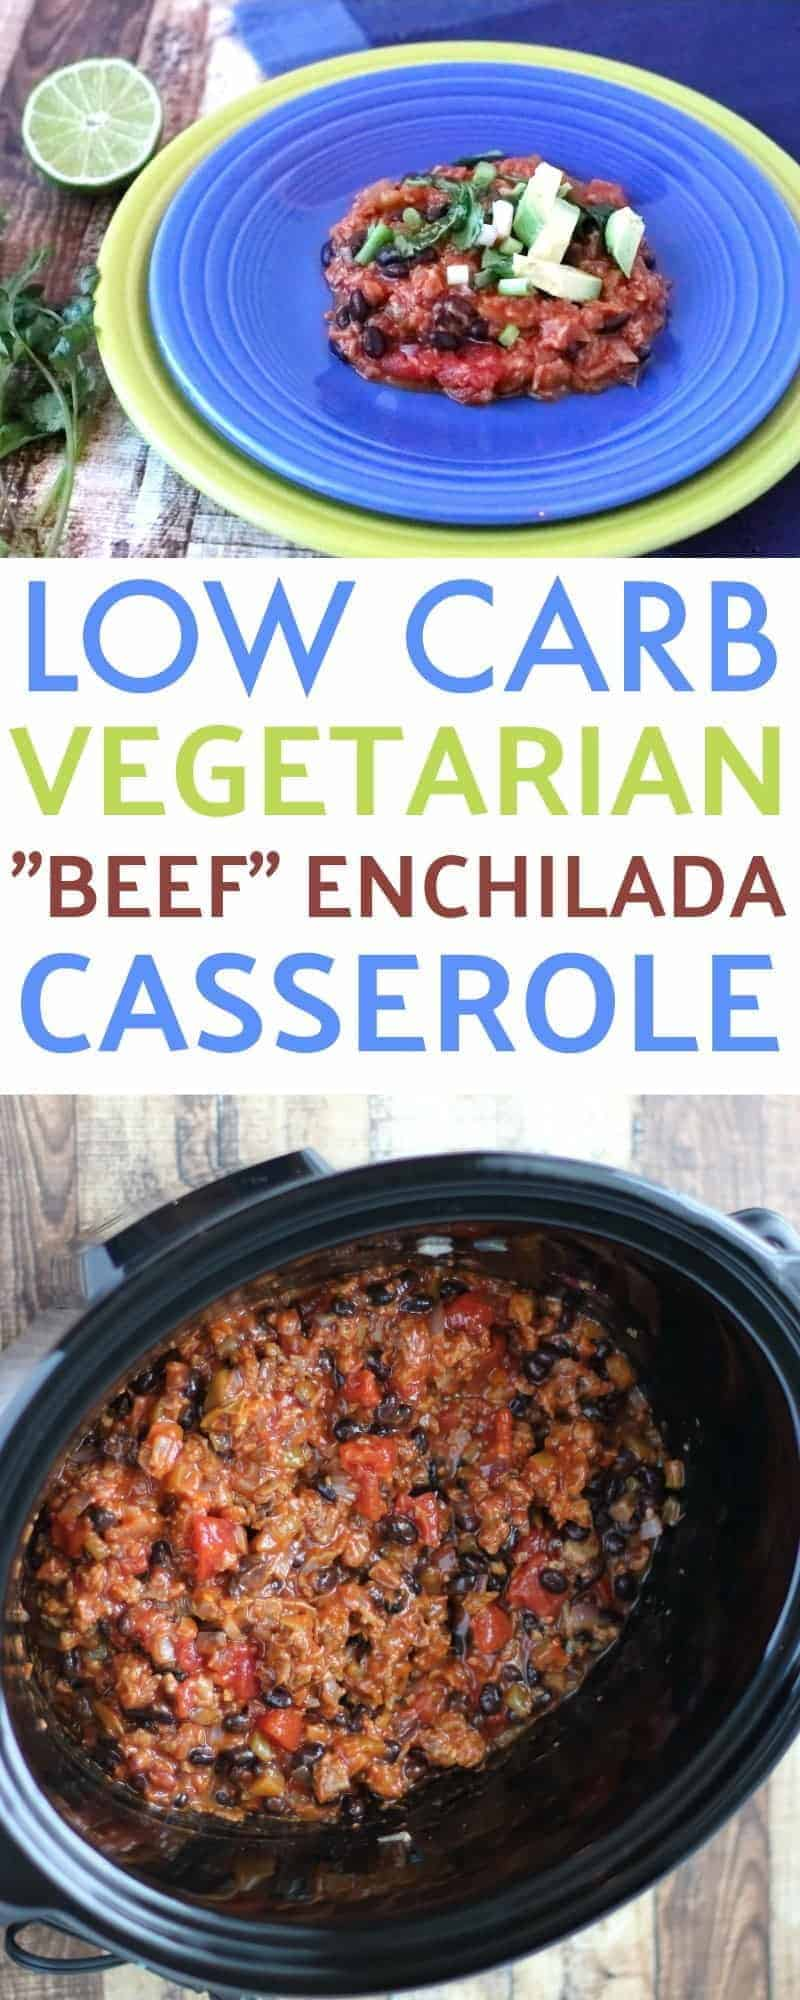 Get dinner on the table with this easy low carb vegetarian